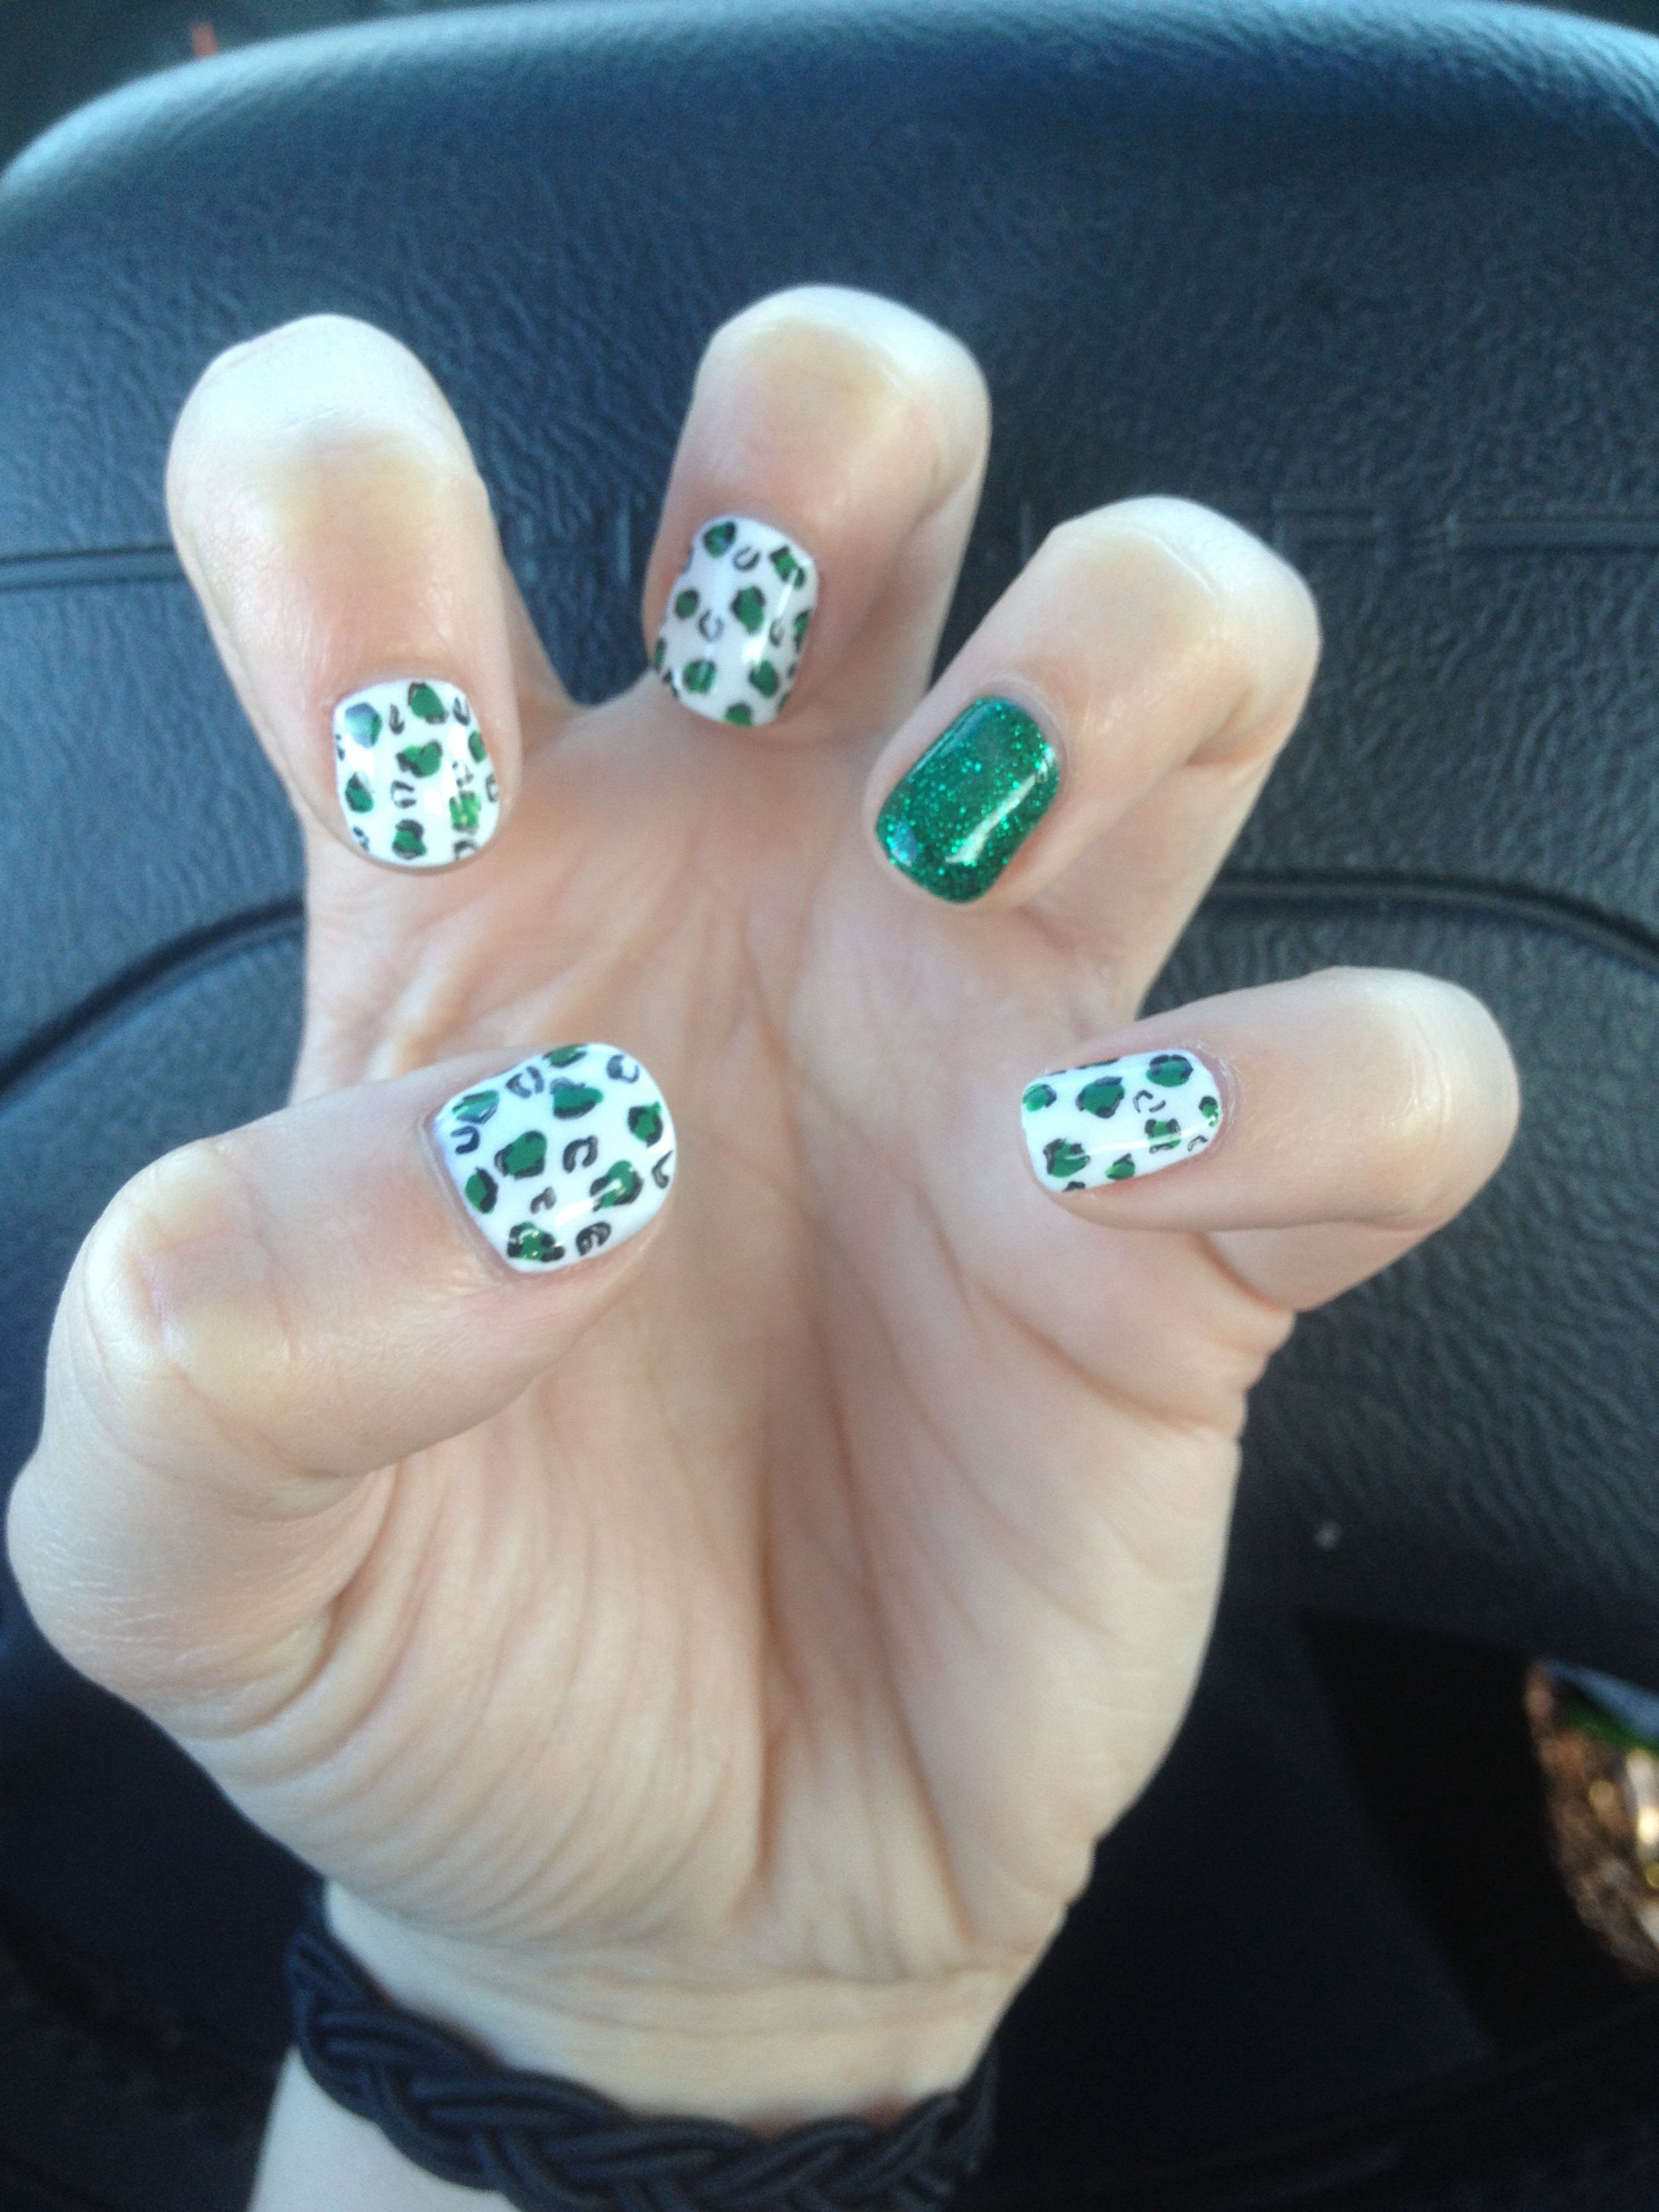 Green Leopard Print/Glitter Shellac Nail Design for St. Patrick's Day | Done by Buddy Sims